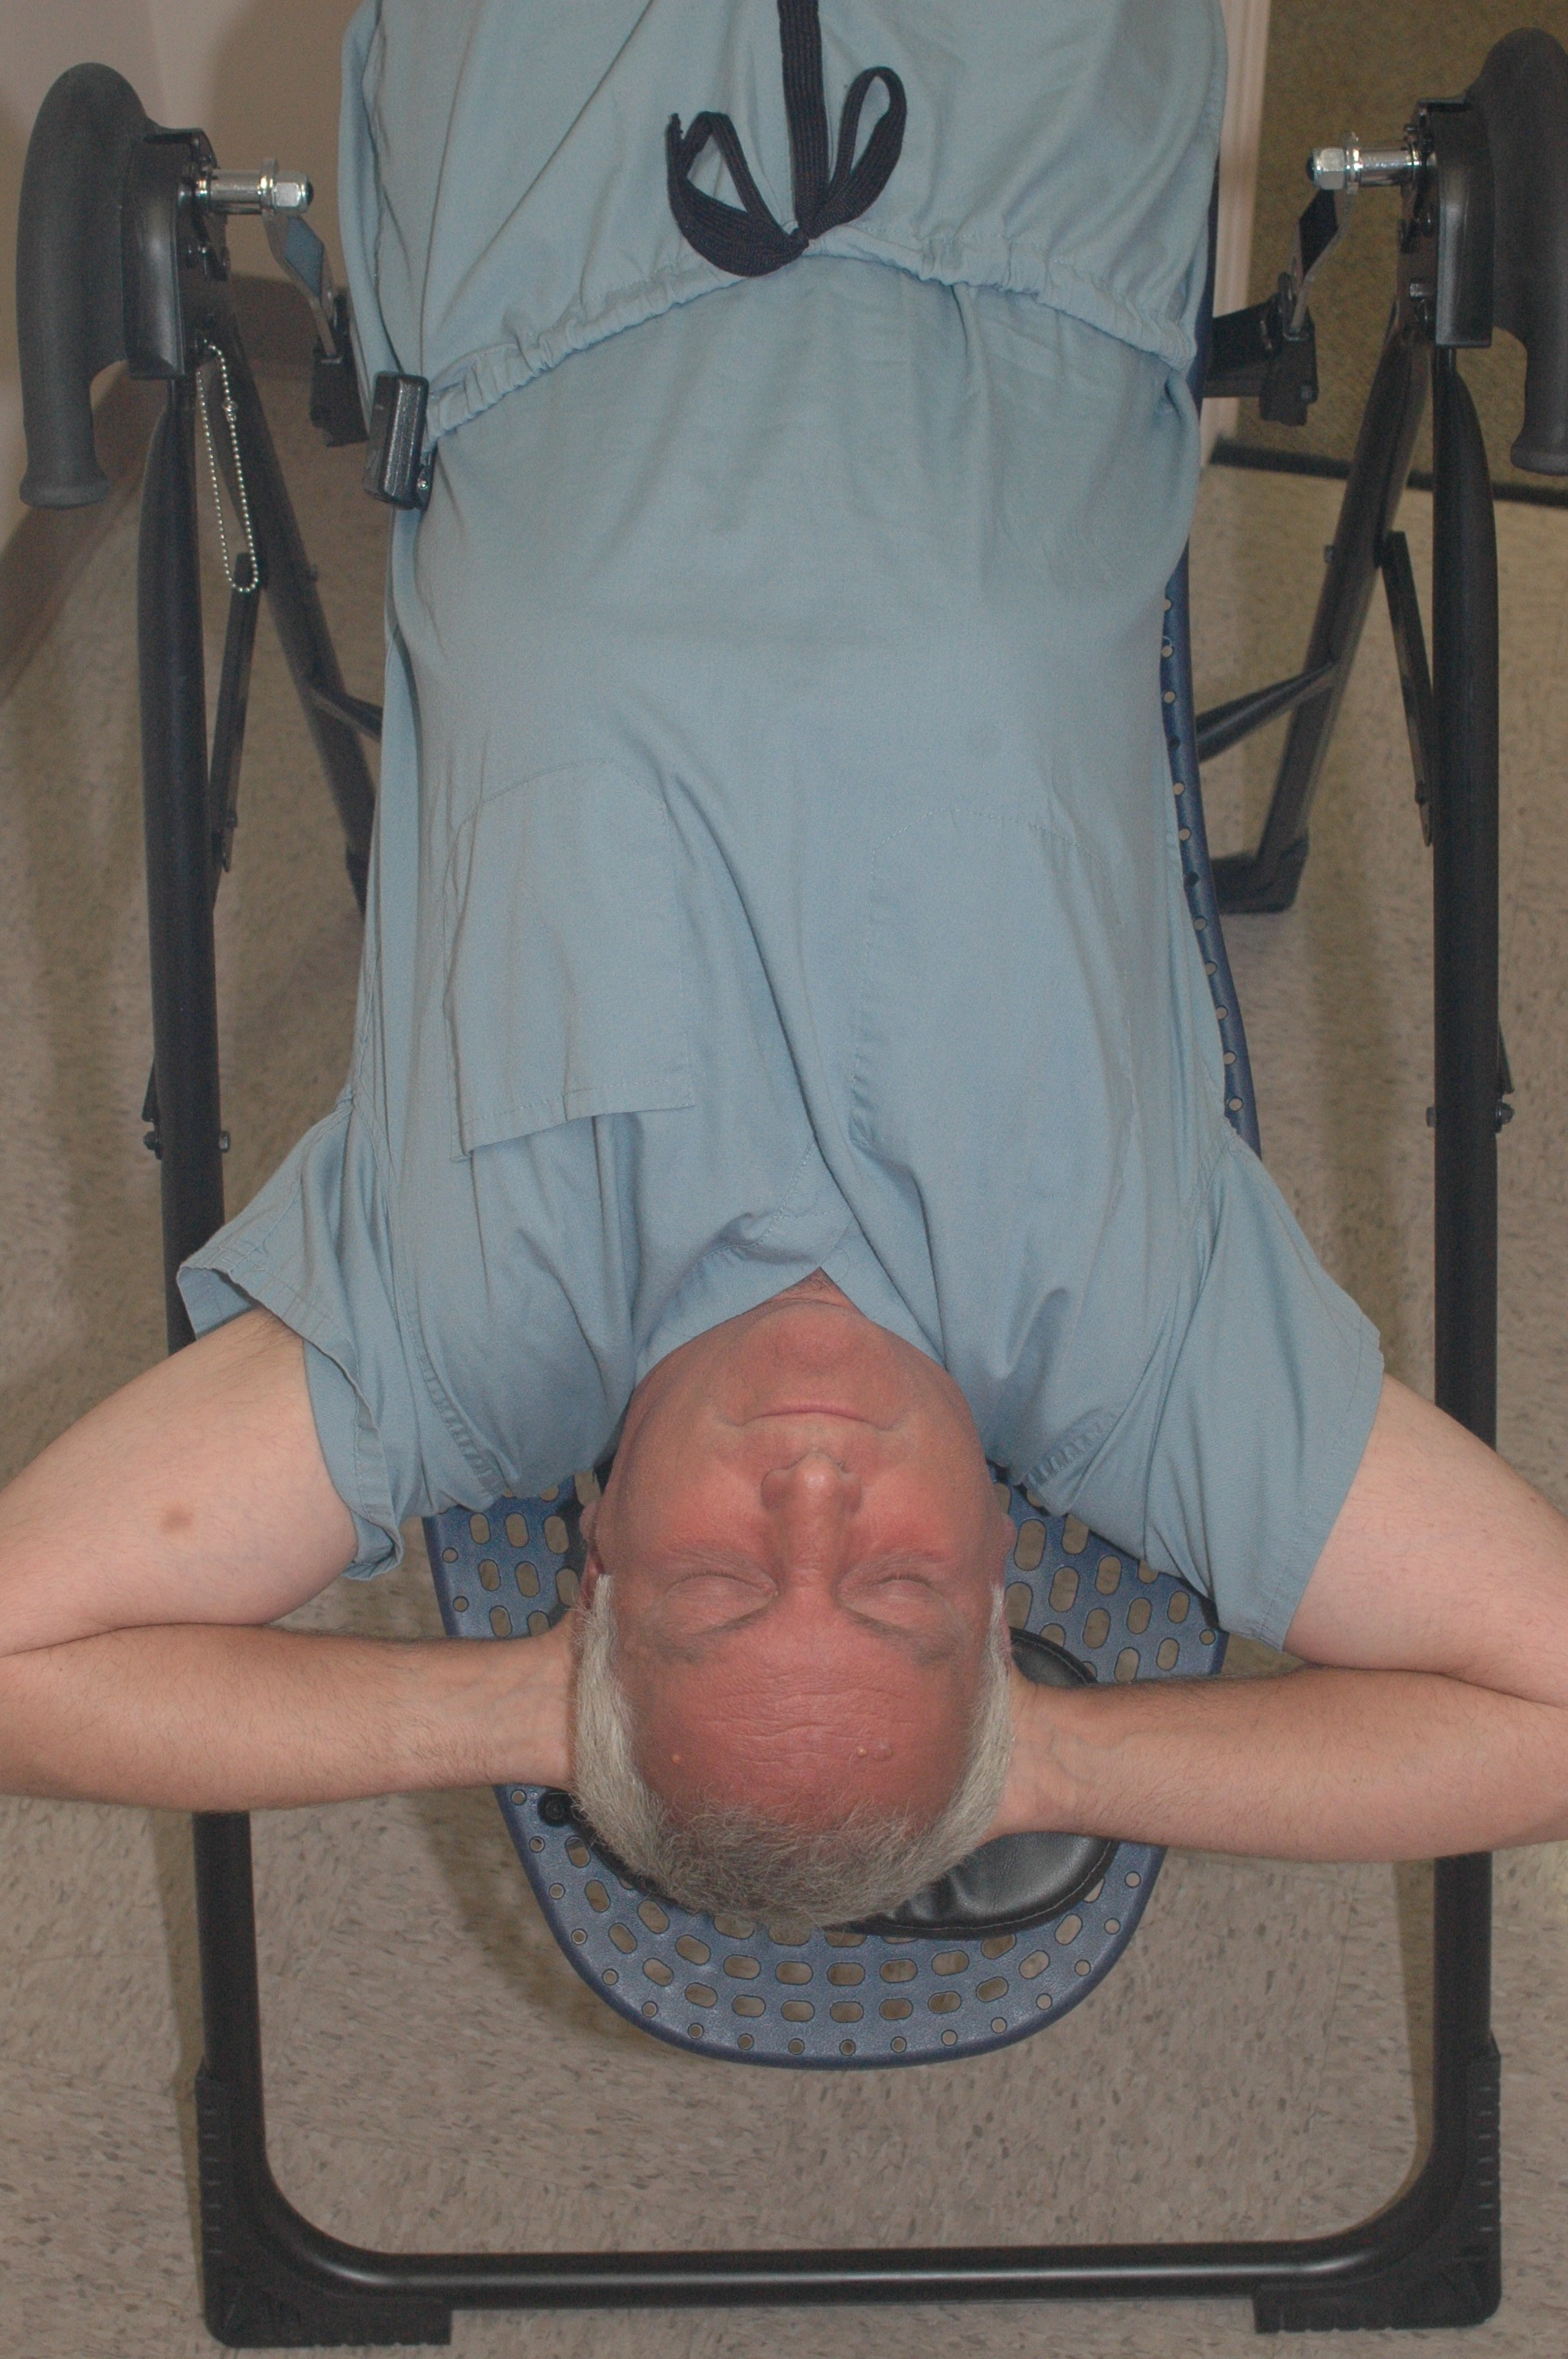 The staff and I find inversion to be pleasant and relaxing.  I invert for at least 15 minutes a day.